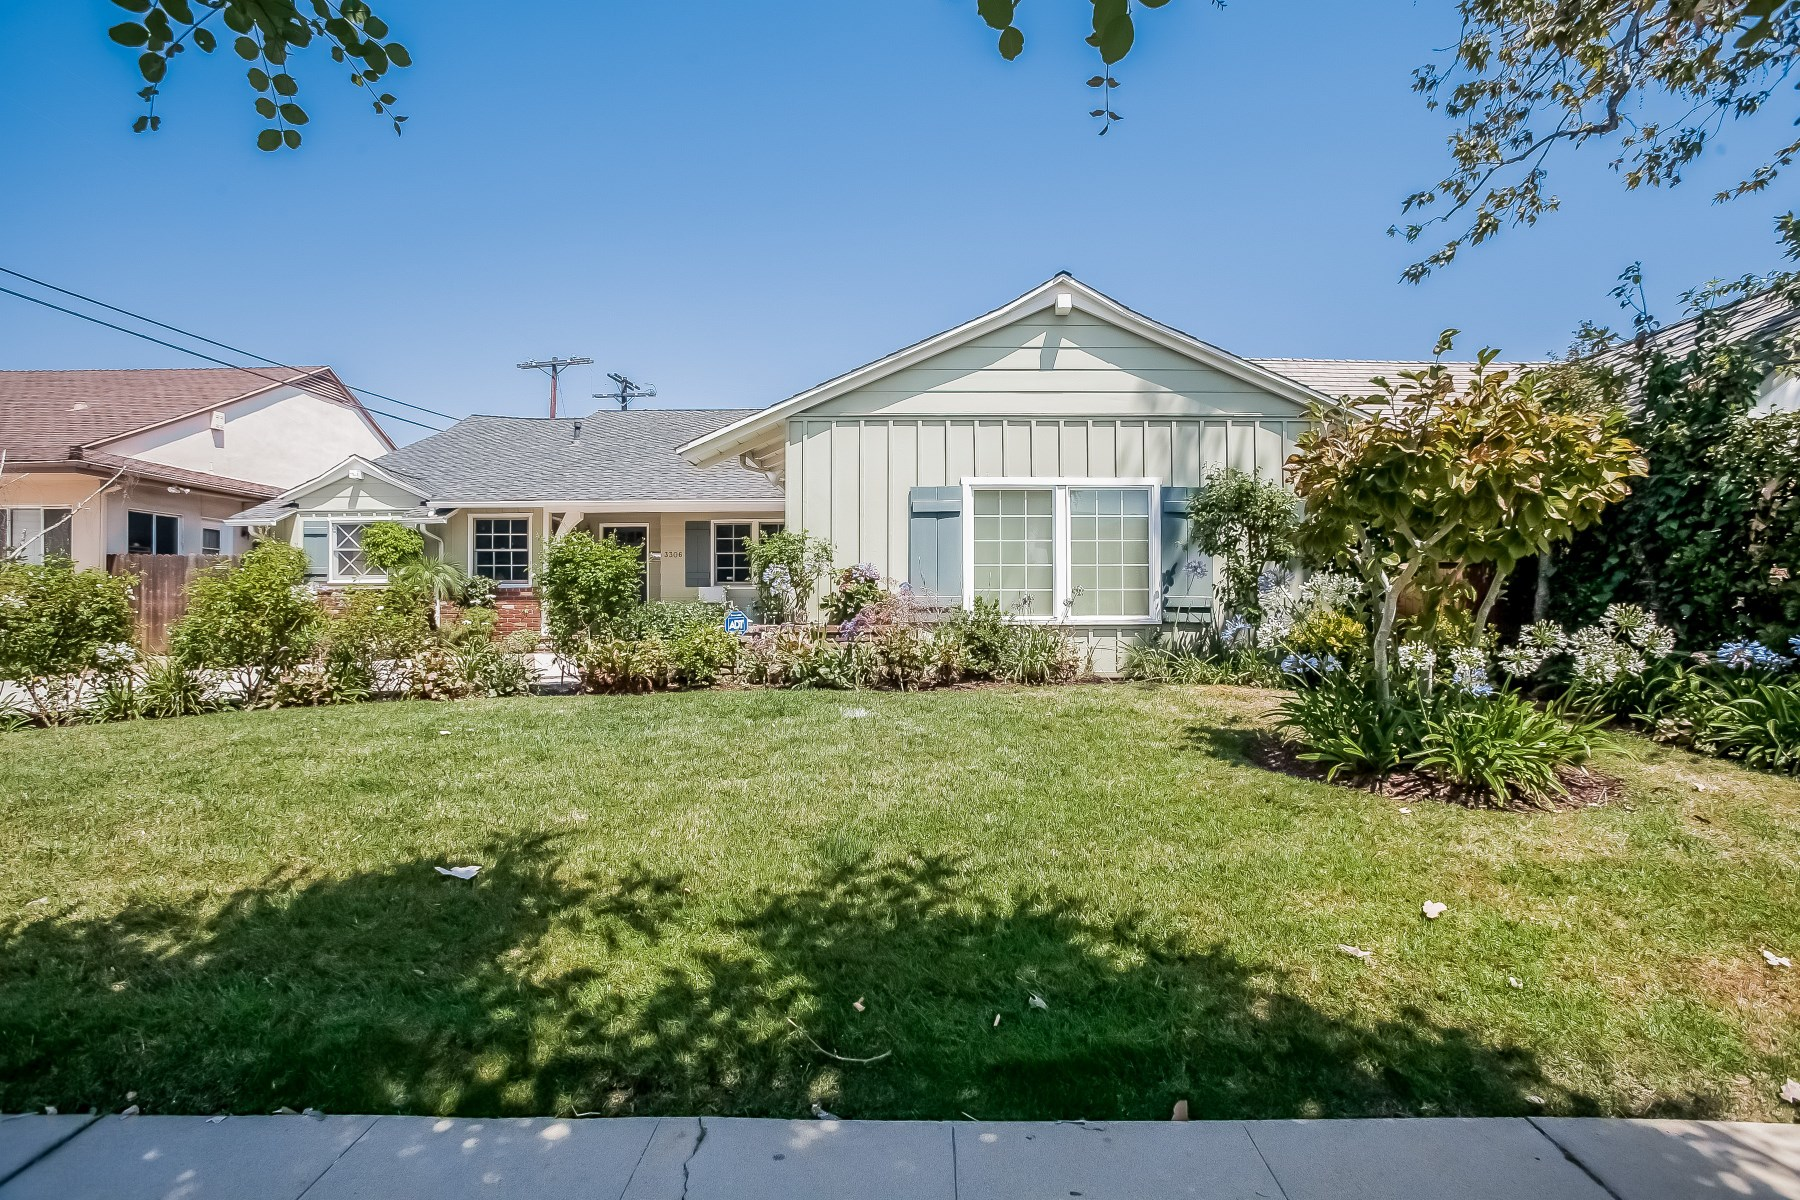 Single Family Home for Sale at Exquisite Remodel in Cheviot Hills 3306 Barbydell Drive Cheviot Hills, Los Angeles, California, 90064 United States